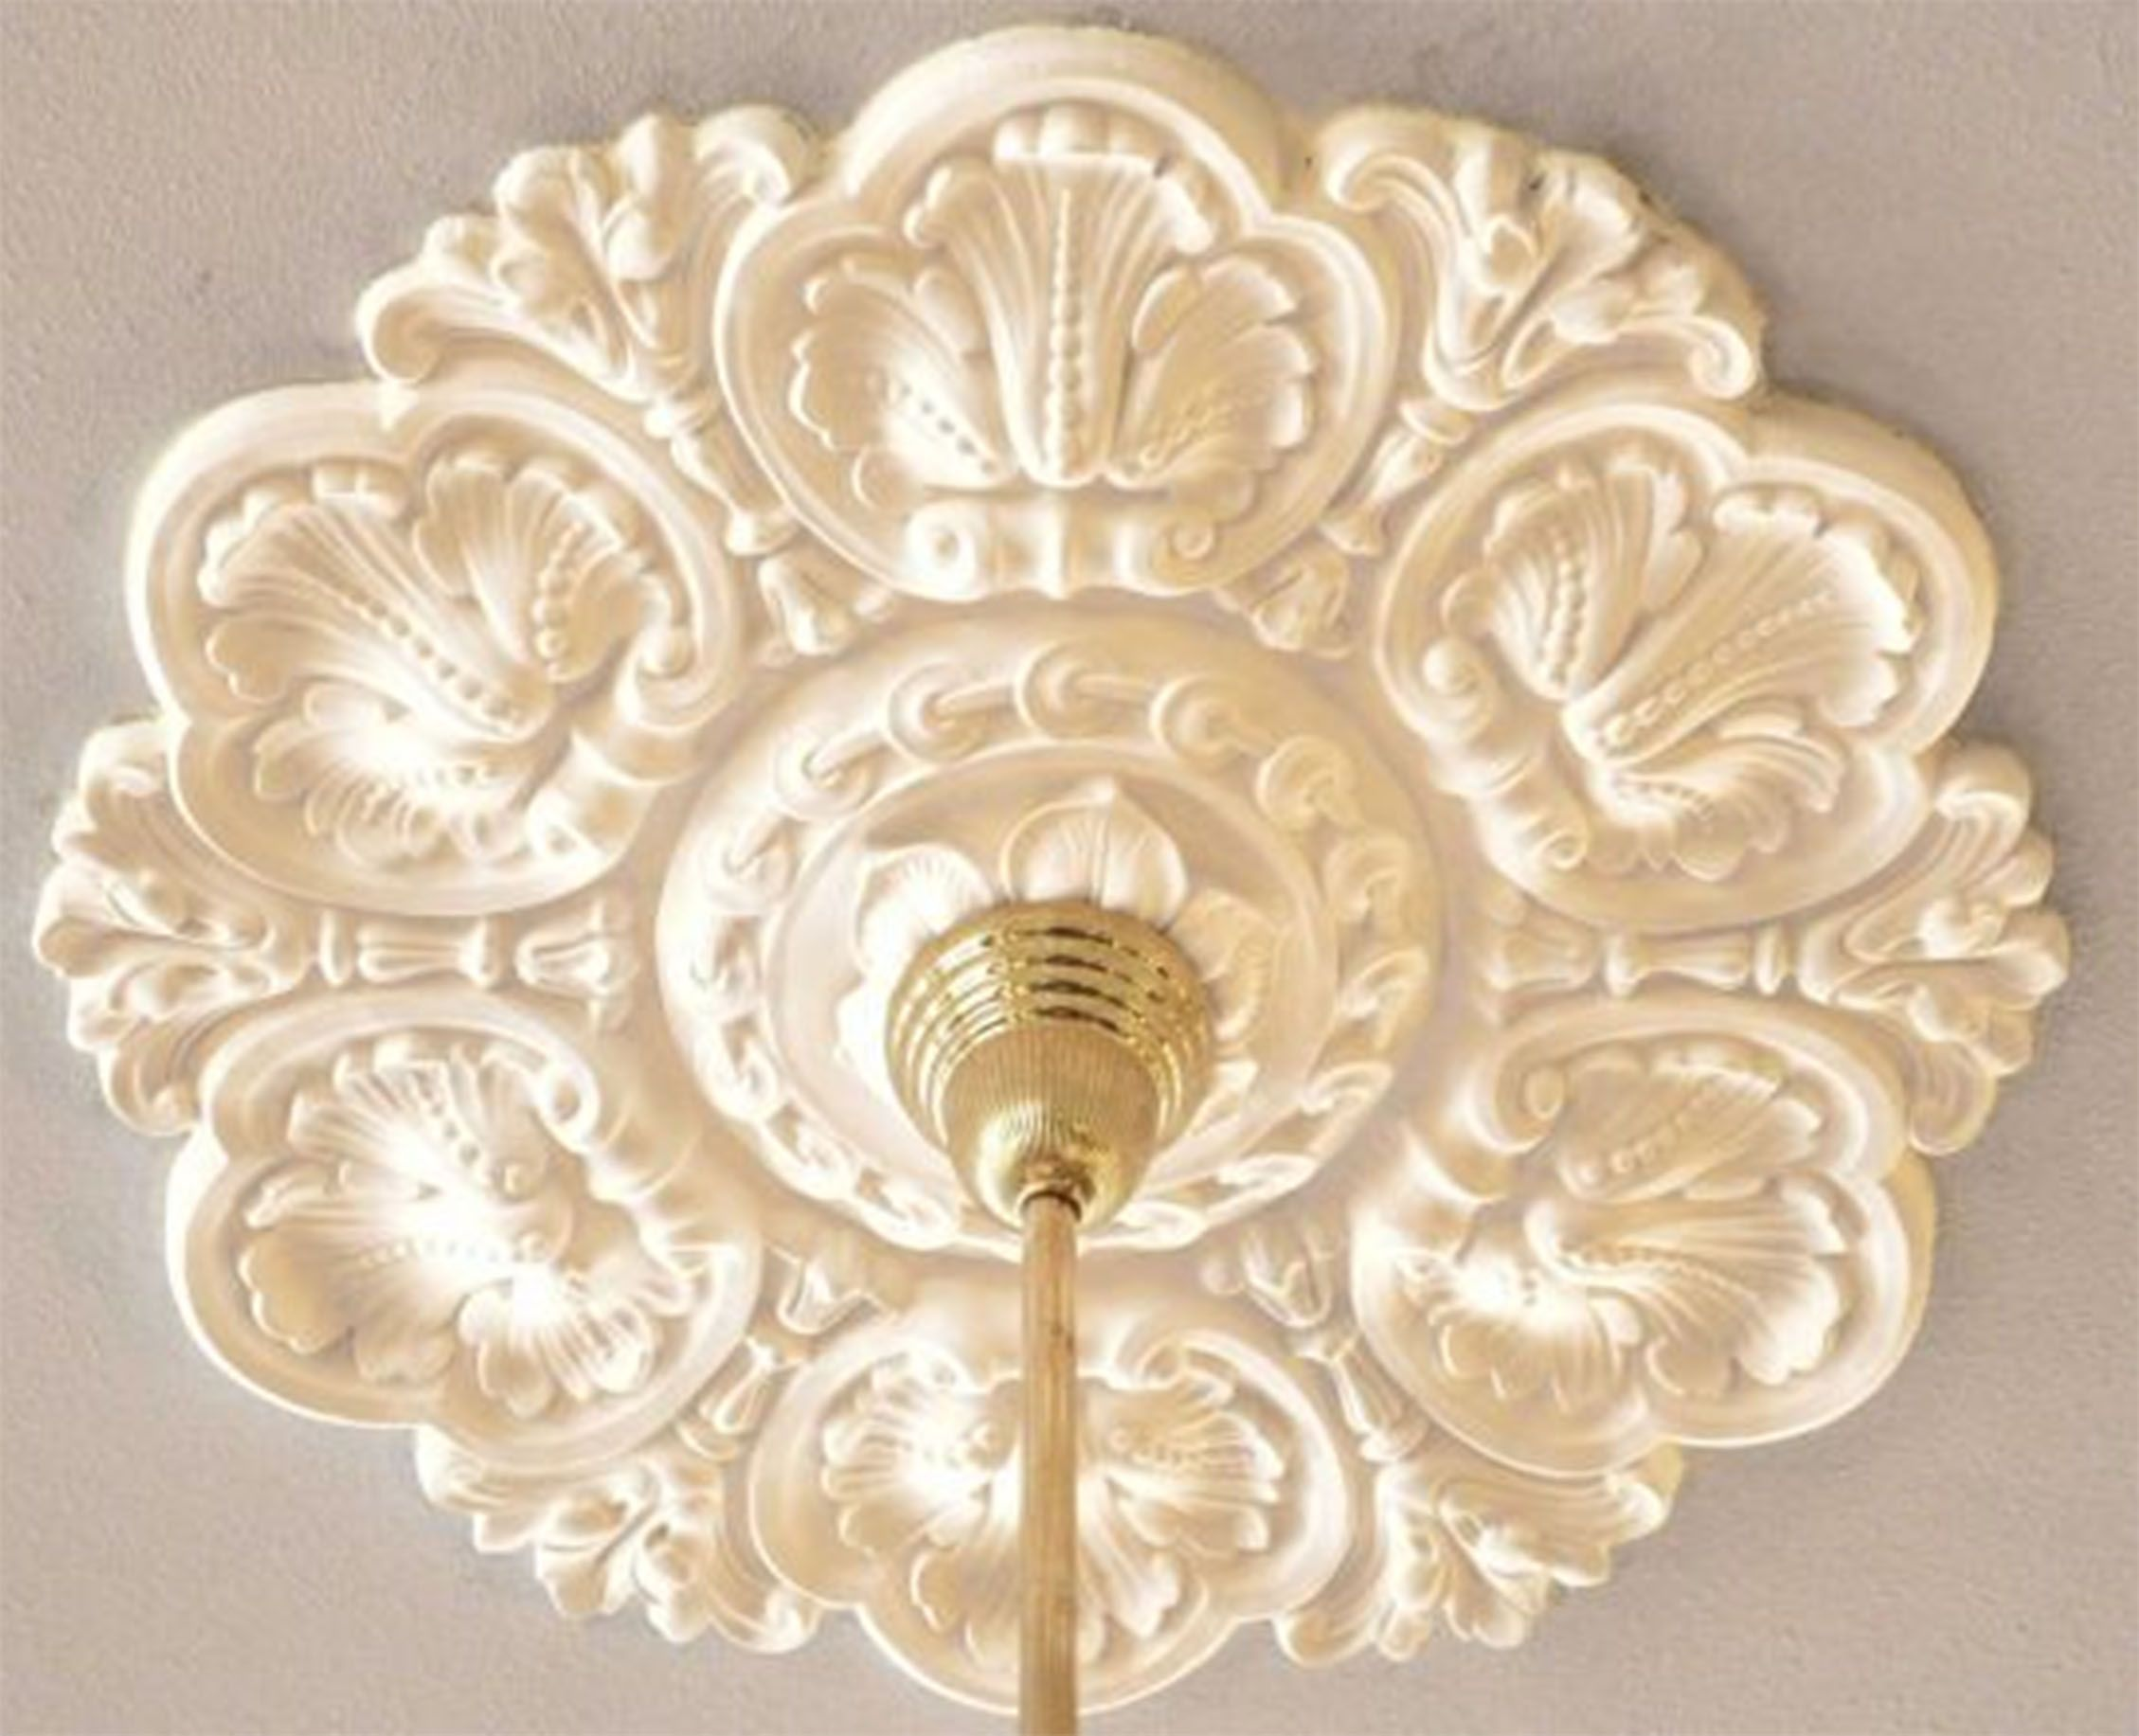 taraba review modern light chandelier let tin antique ornaments ceiling new of there be medallion home